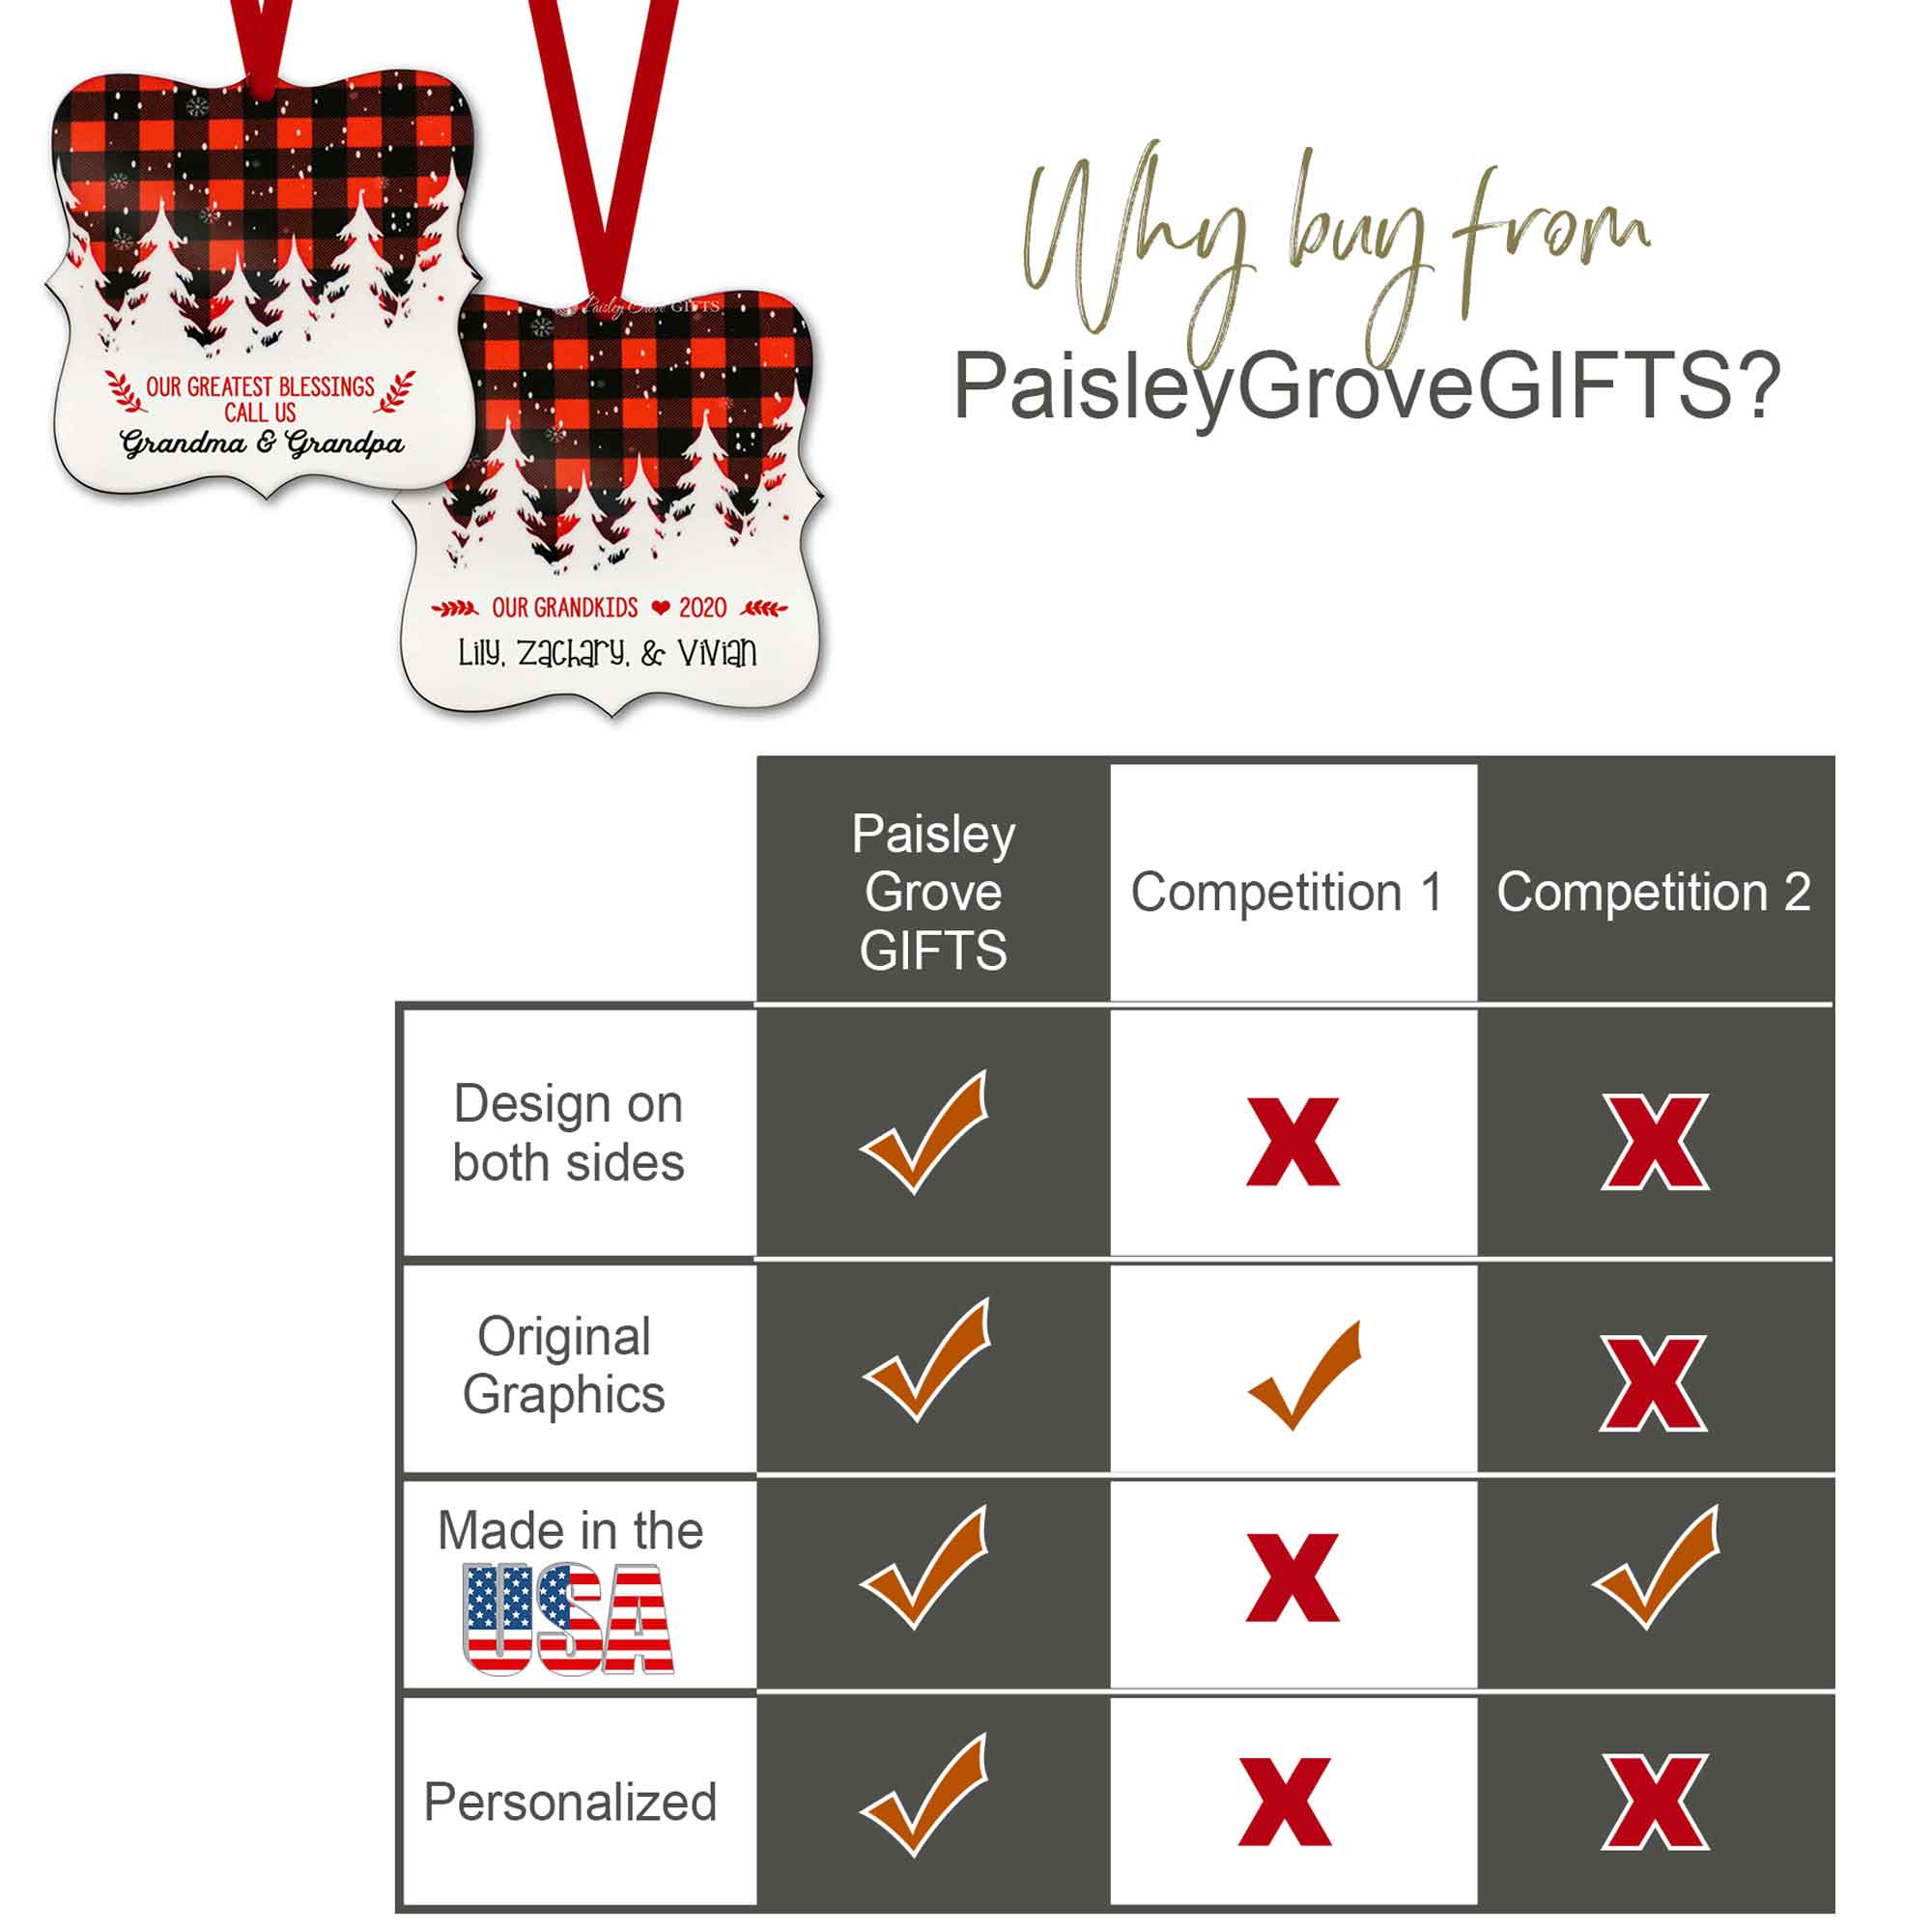 CopyrightPaisleyGroveGIFTS S502e5 Quality Ornament Superior to Others Comparison Chart Personalized Grandparent's Gift